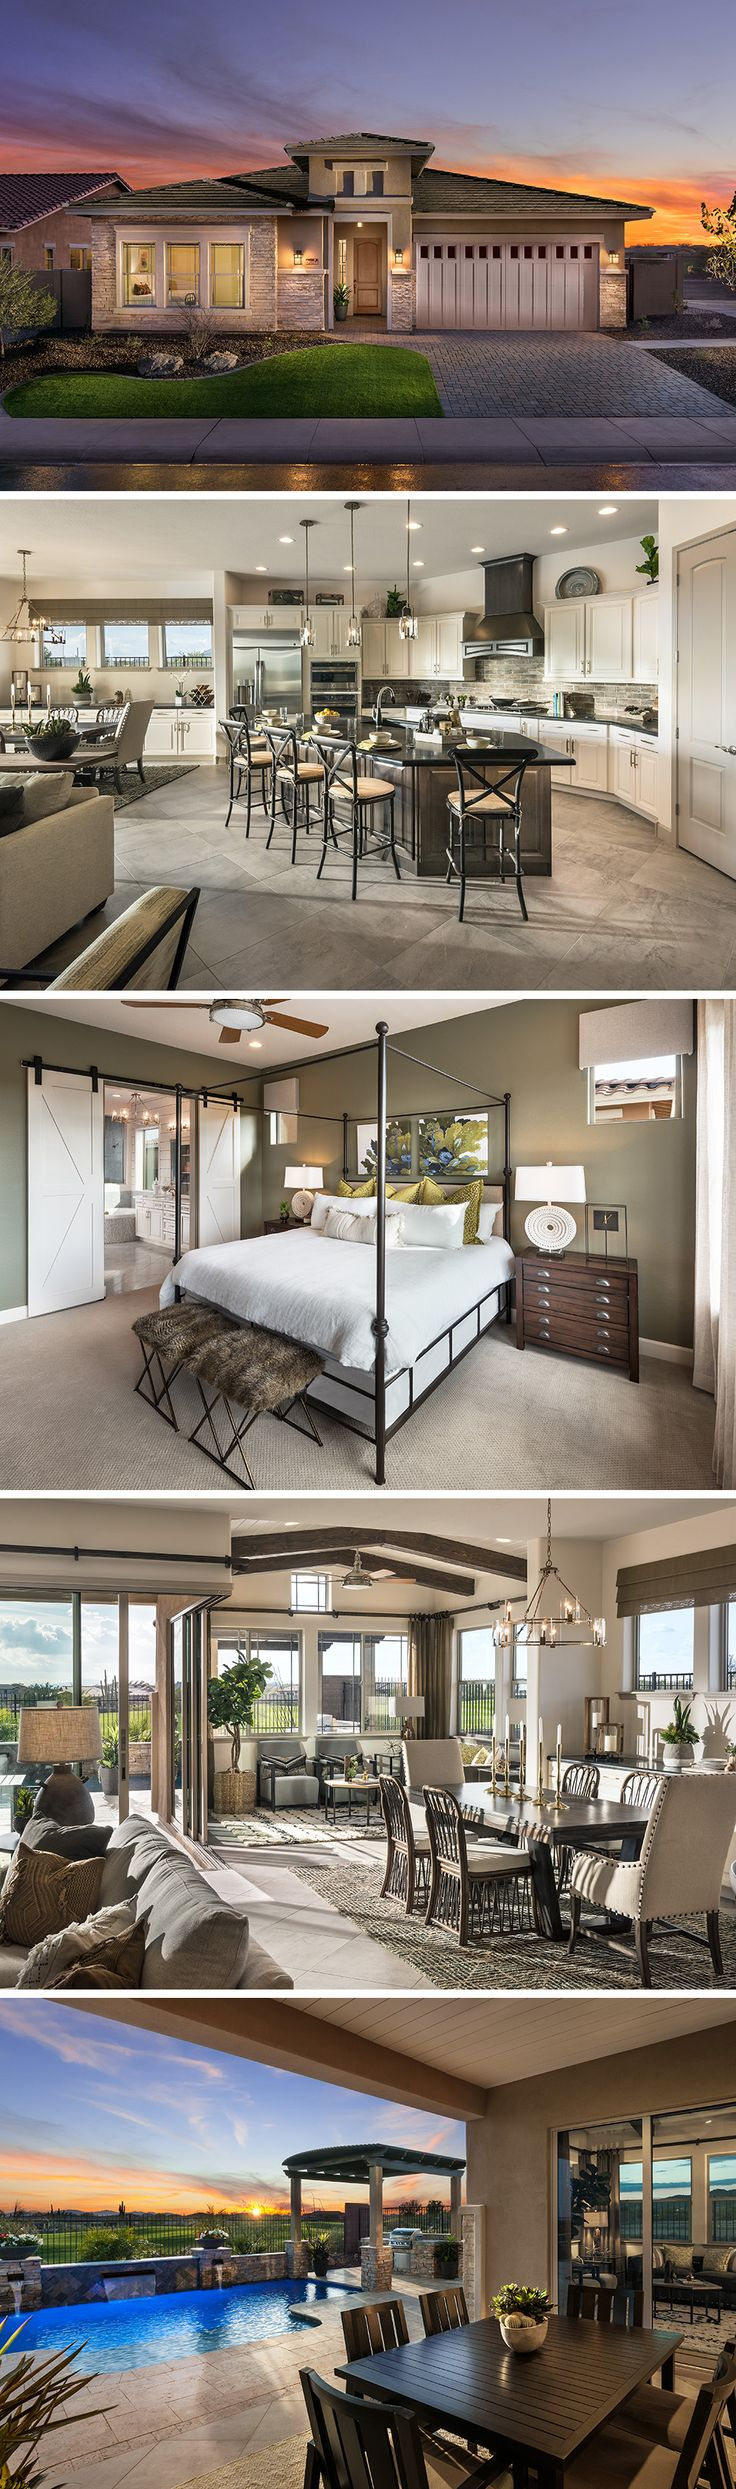 Genuis at home pinterest design trends new homes and trends - David Weekley Homes Is Now Building Beautiful New Homes In The Greens At Blackstone Located Home Design